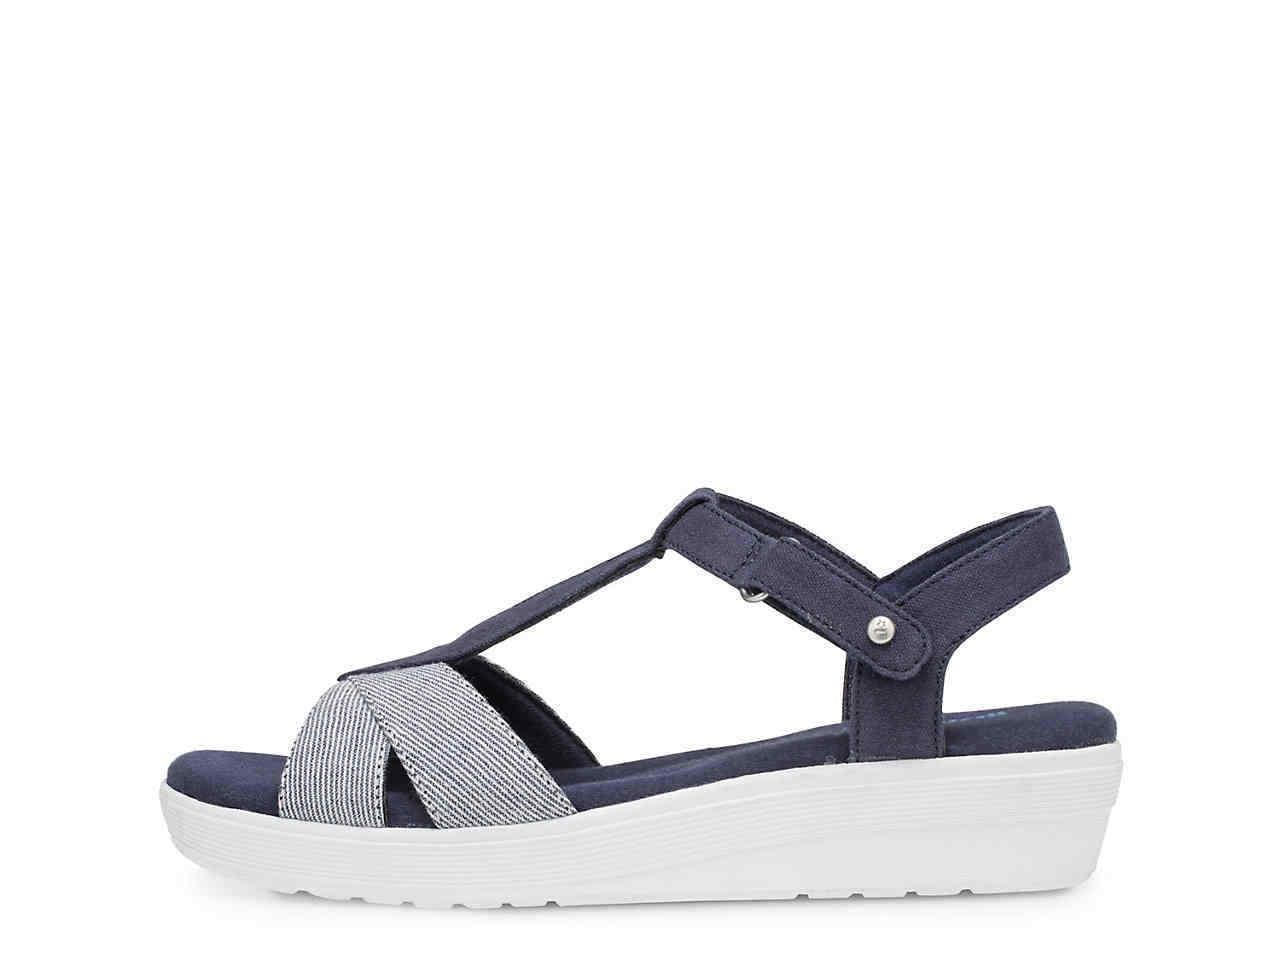 Grasshoppers Blue/White Casual Comfort Shoes